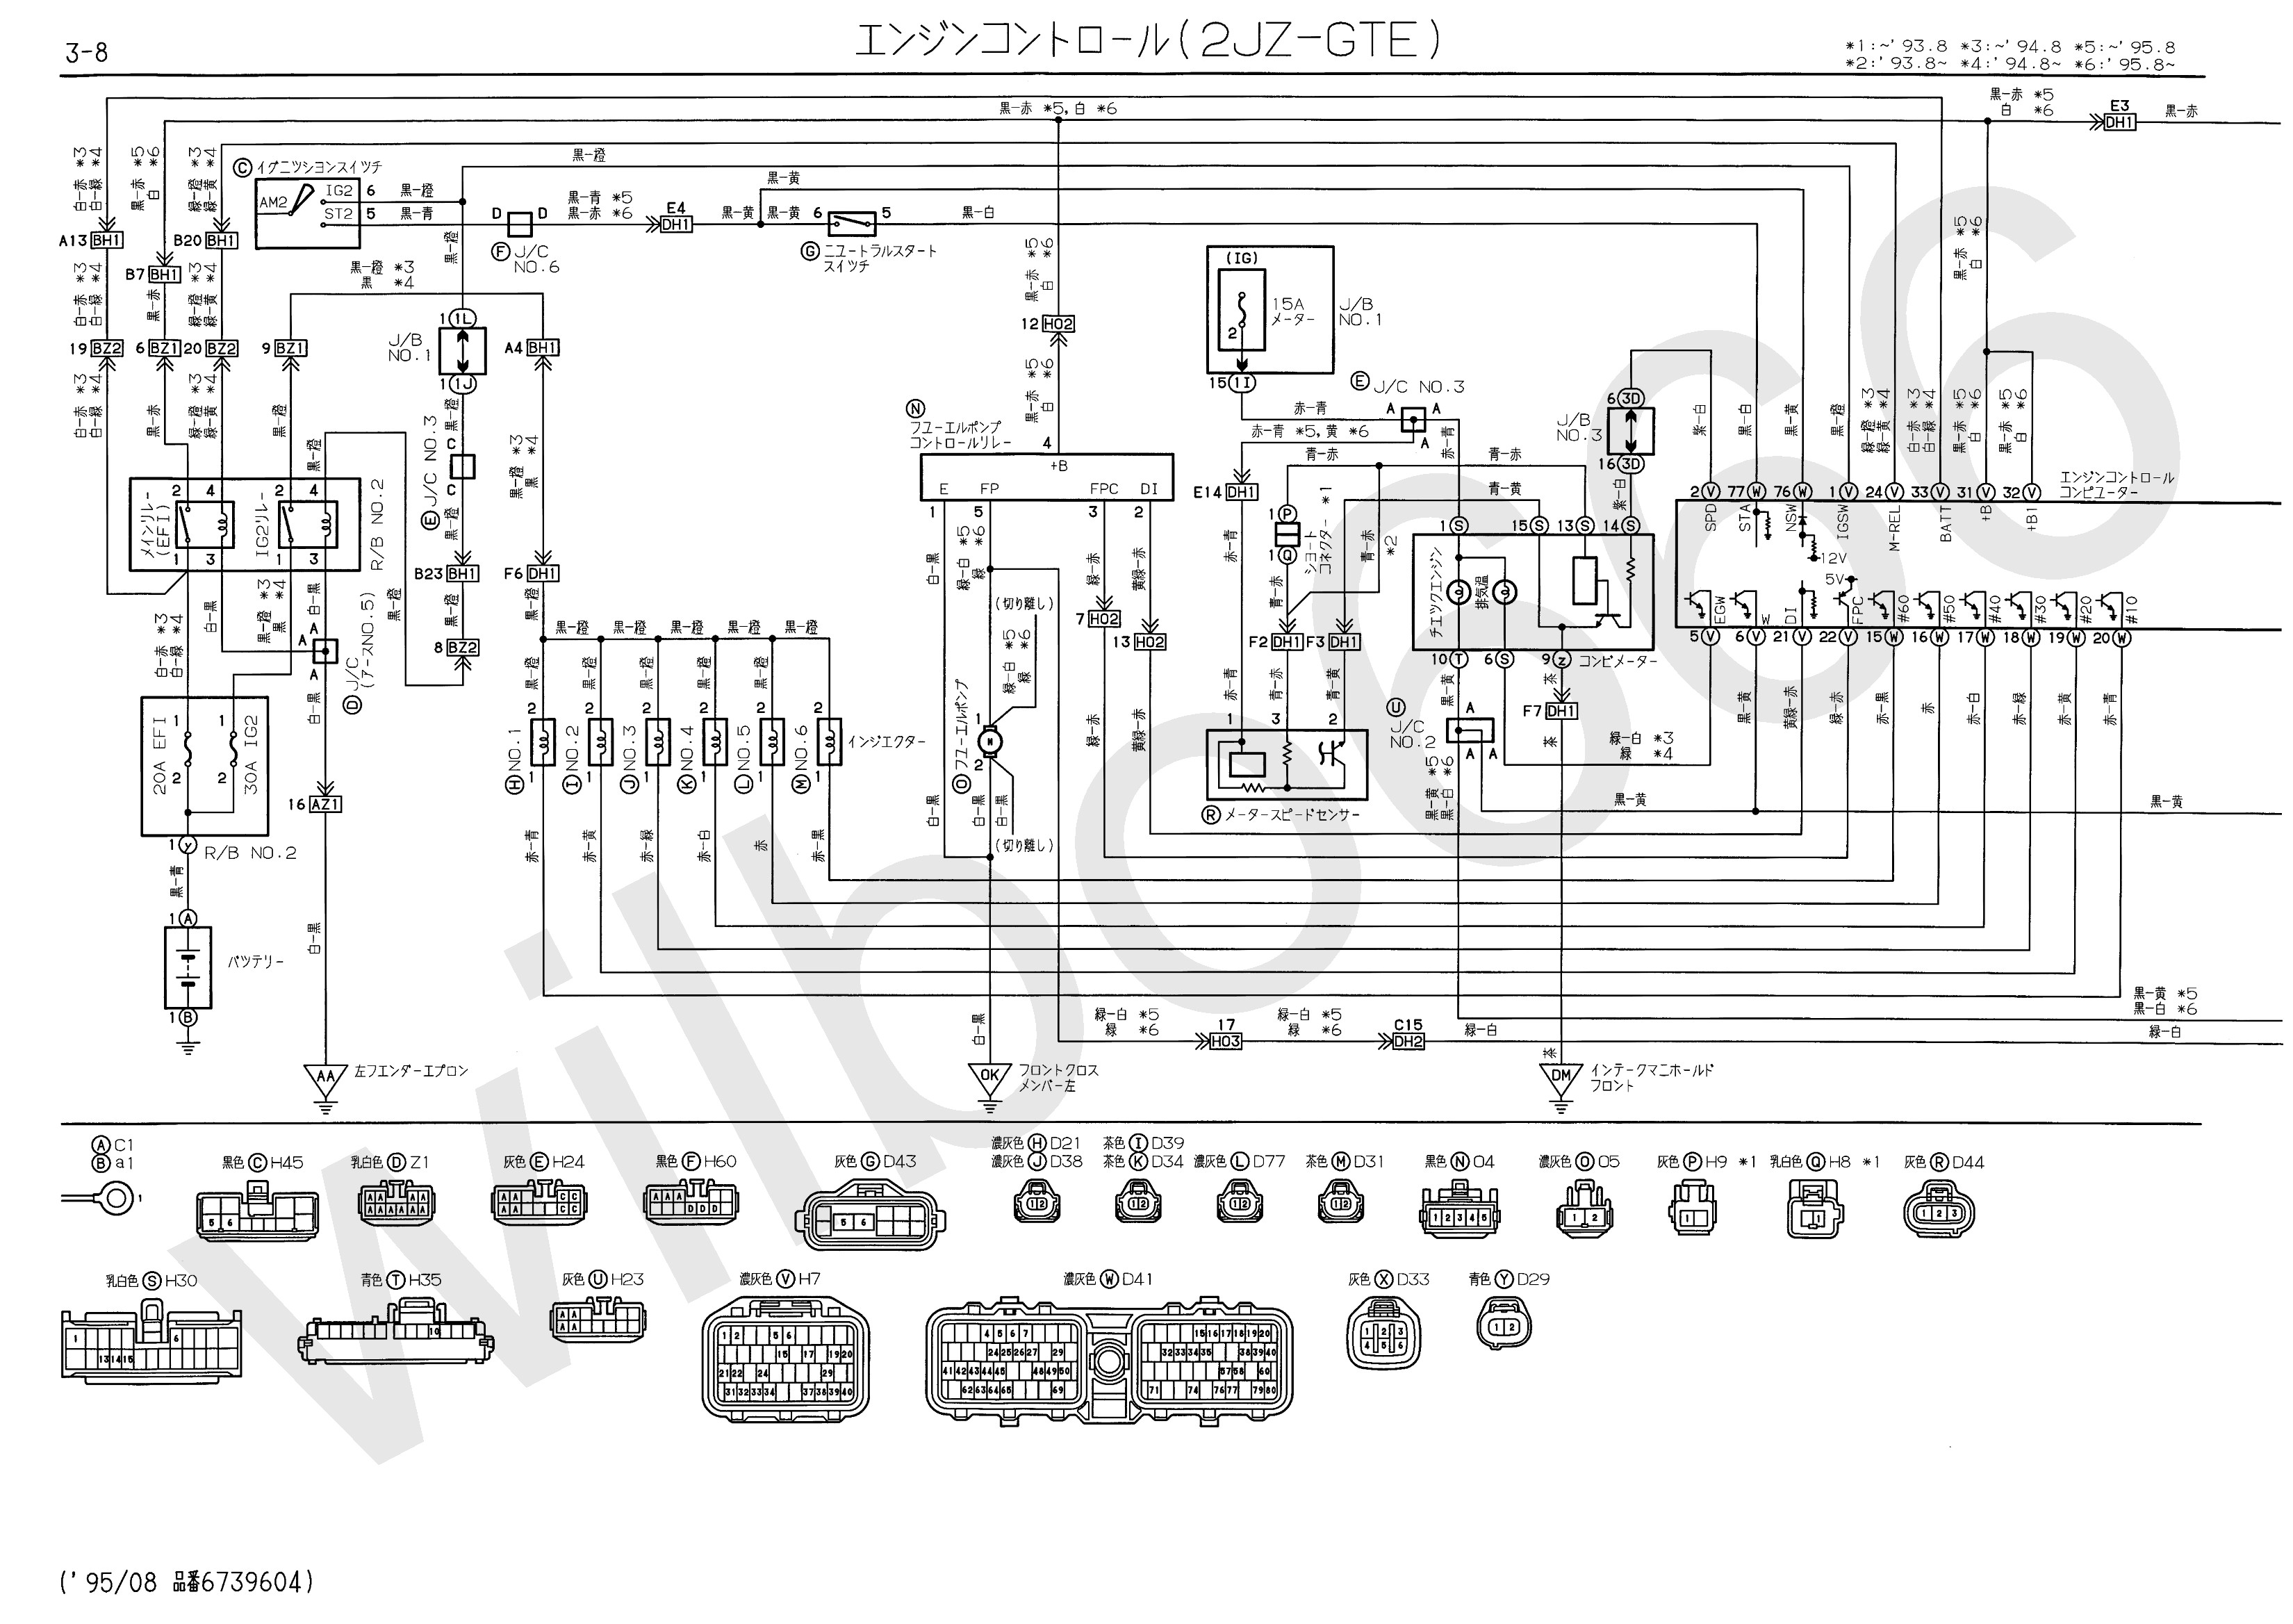 Obd2b Engine Harness Diagram Wilbo666 2jz Gte Jzs147 Aristo Engine ...